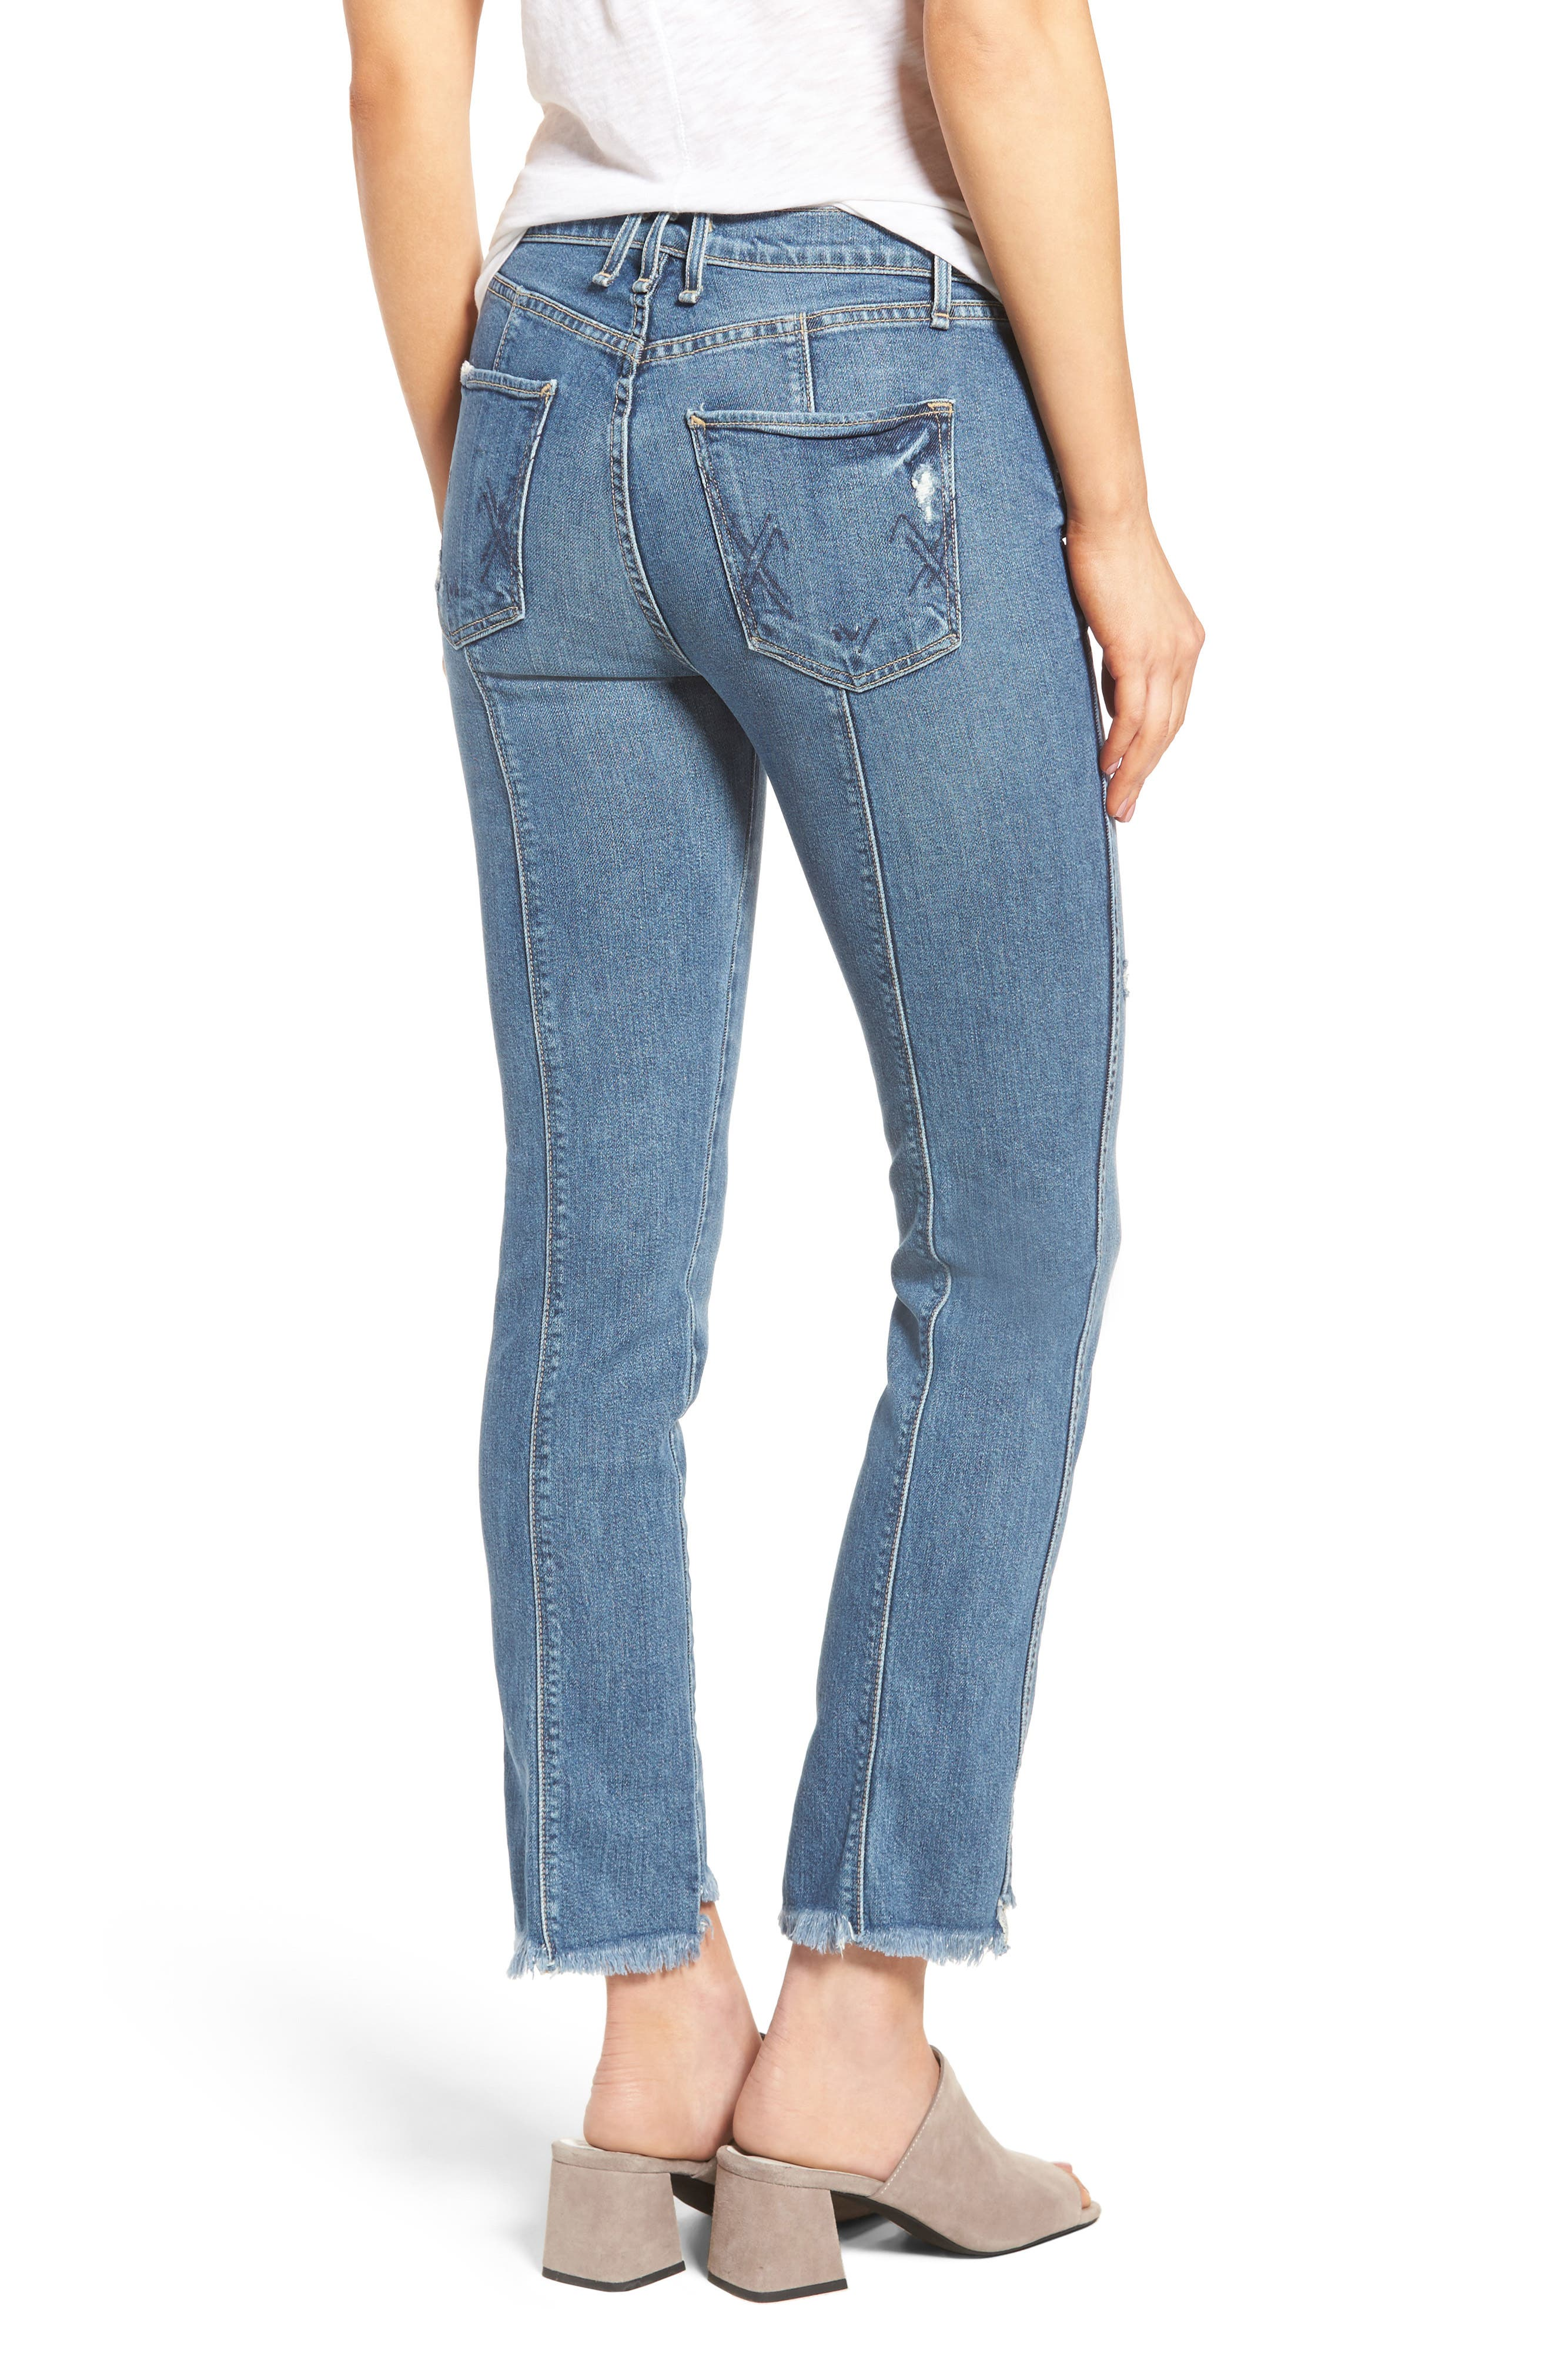 Lido Frayed Crop Straight Leg Jeans,                             Alternate thumbnail 2, color,                             461